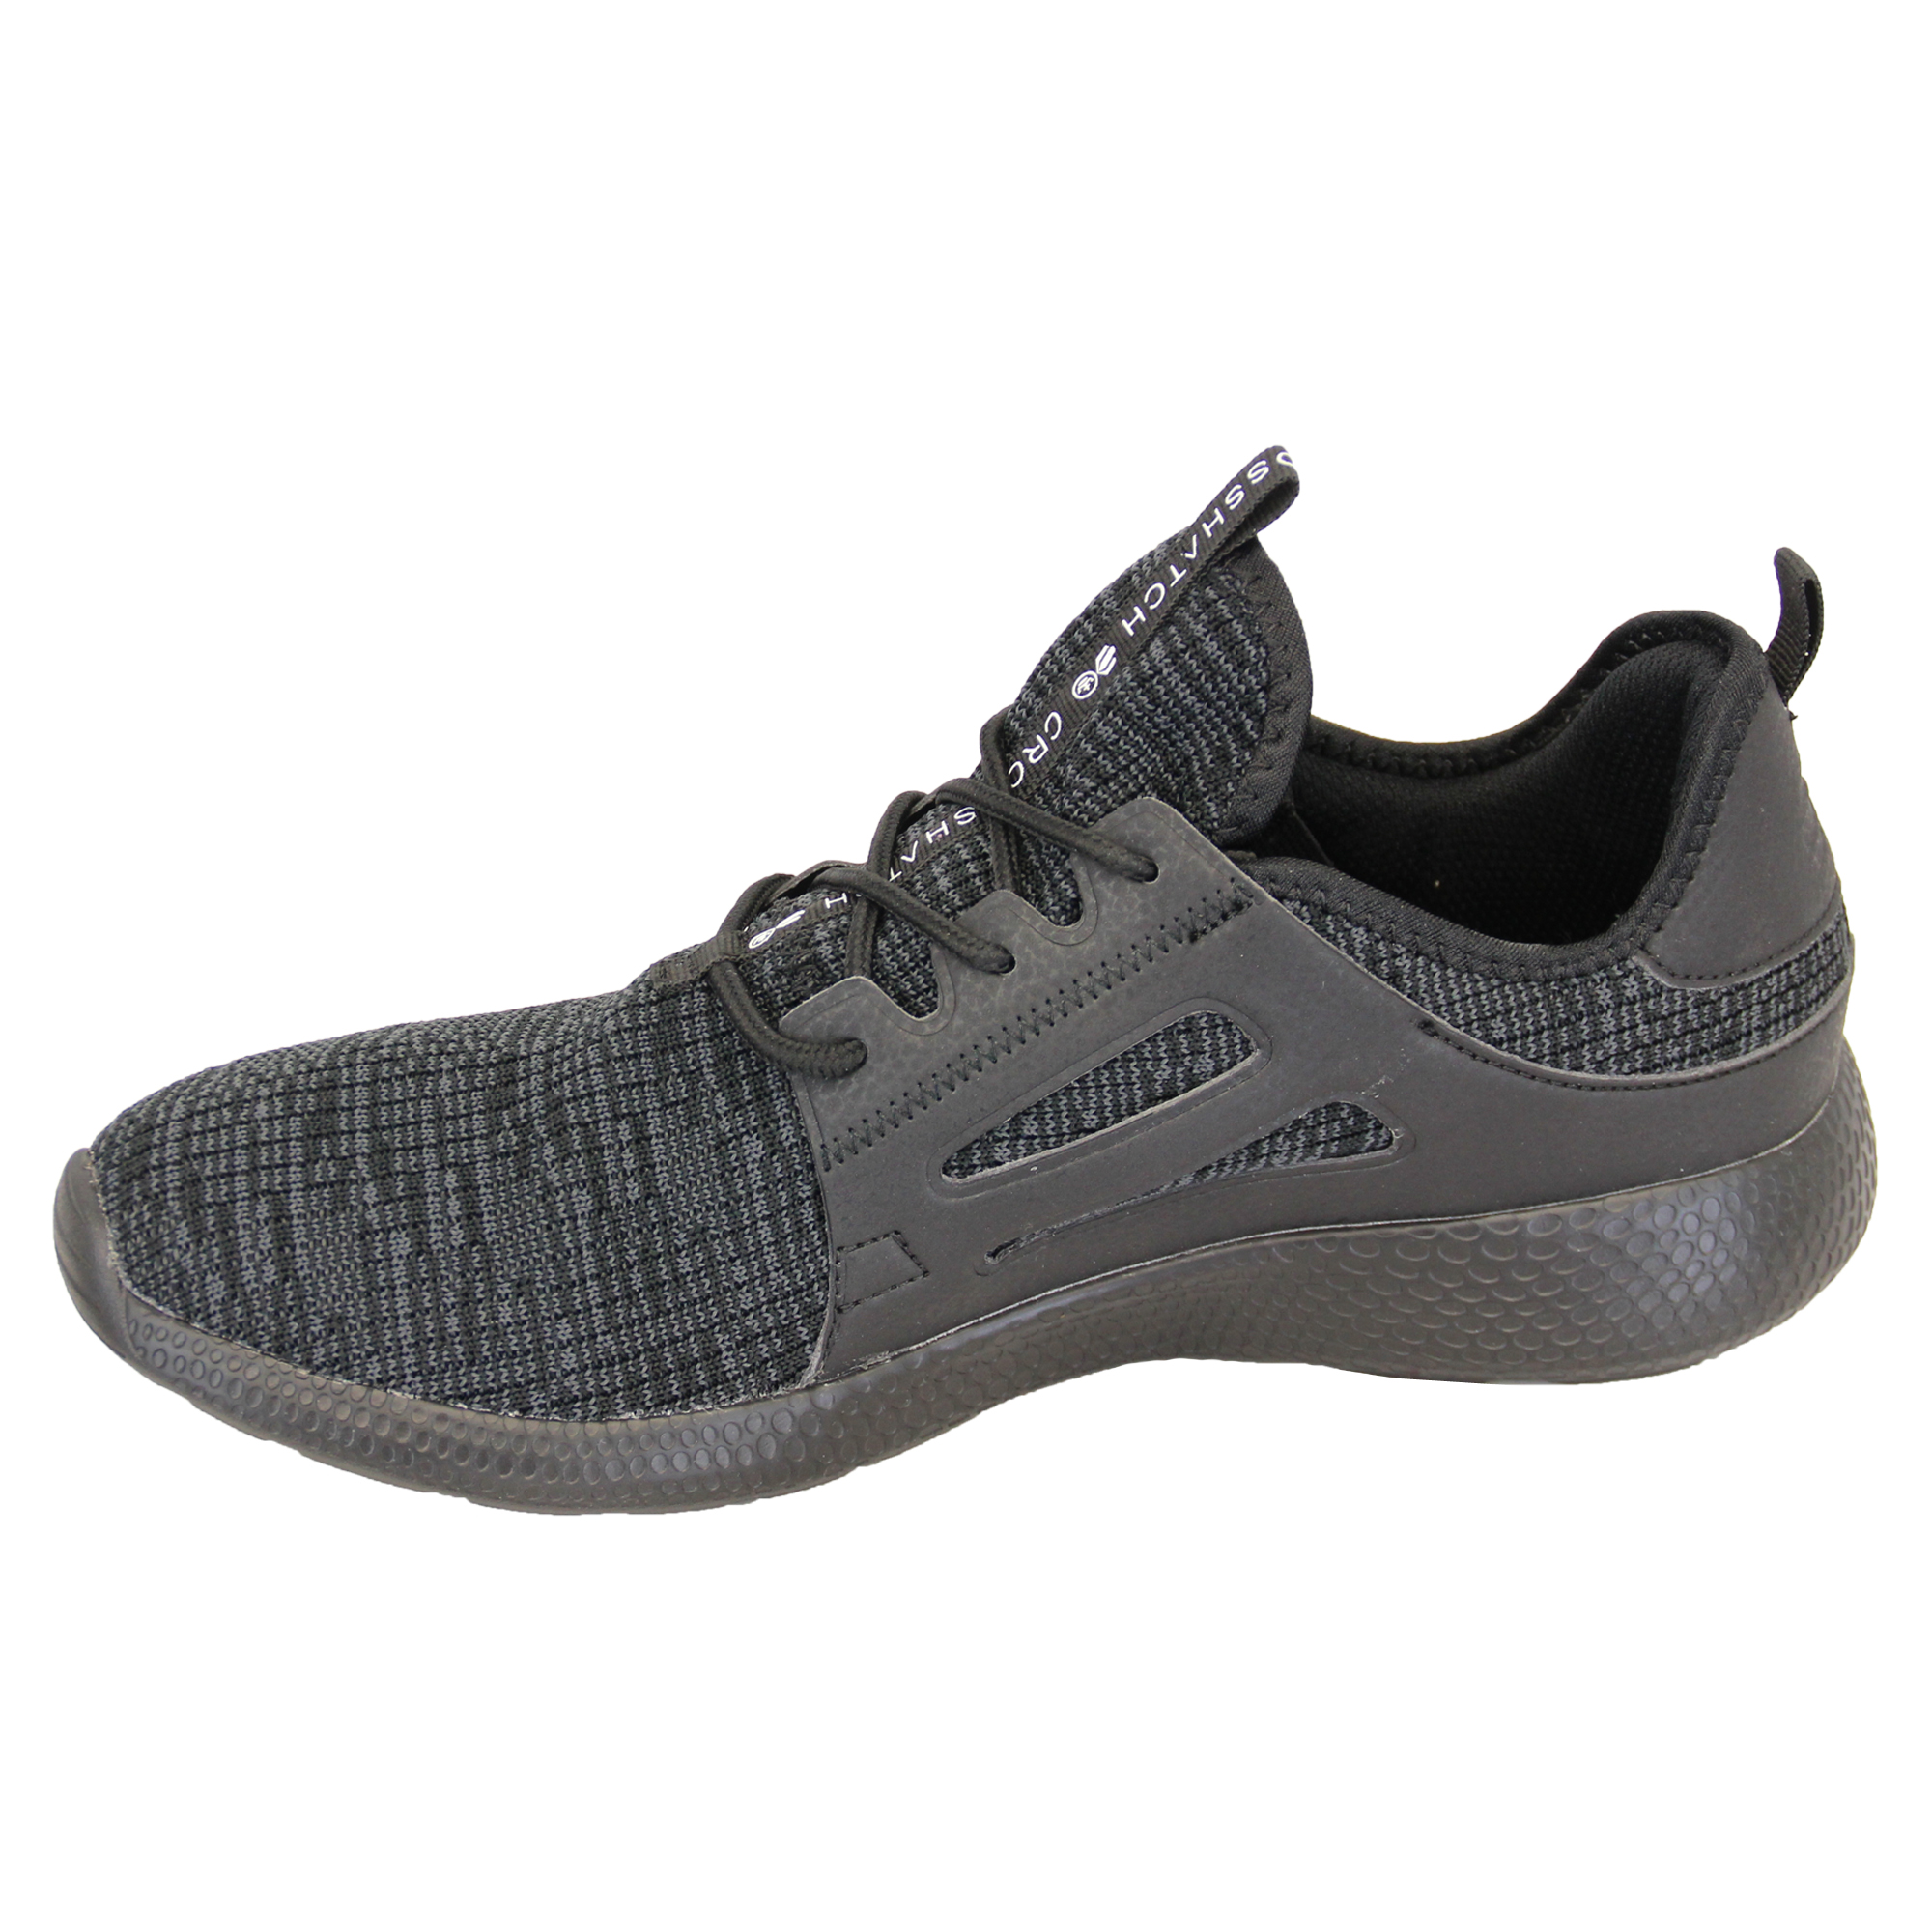 Mens-Trainers-Crosshatch-Jogging-Shoes-Lace-Up-Walking-Running-Sports-Gym-New thumbnail 3